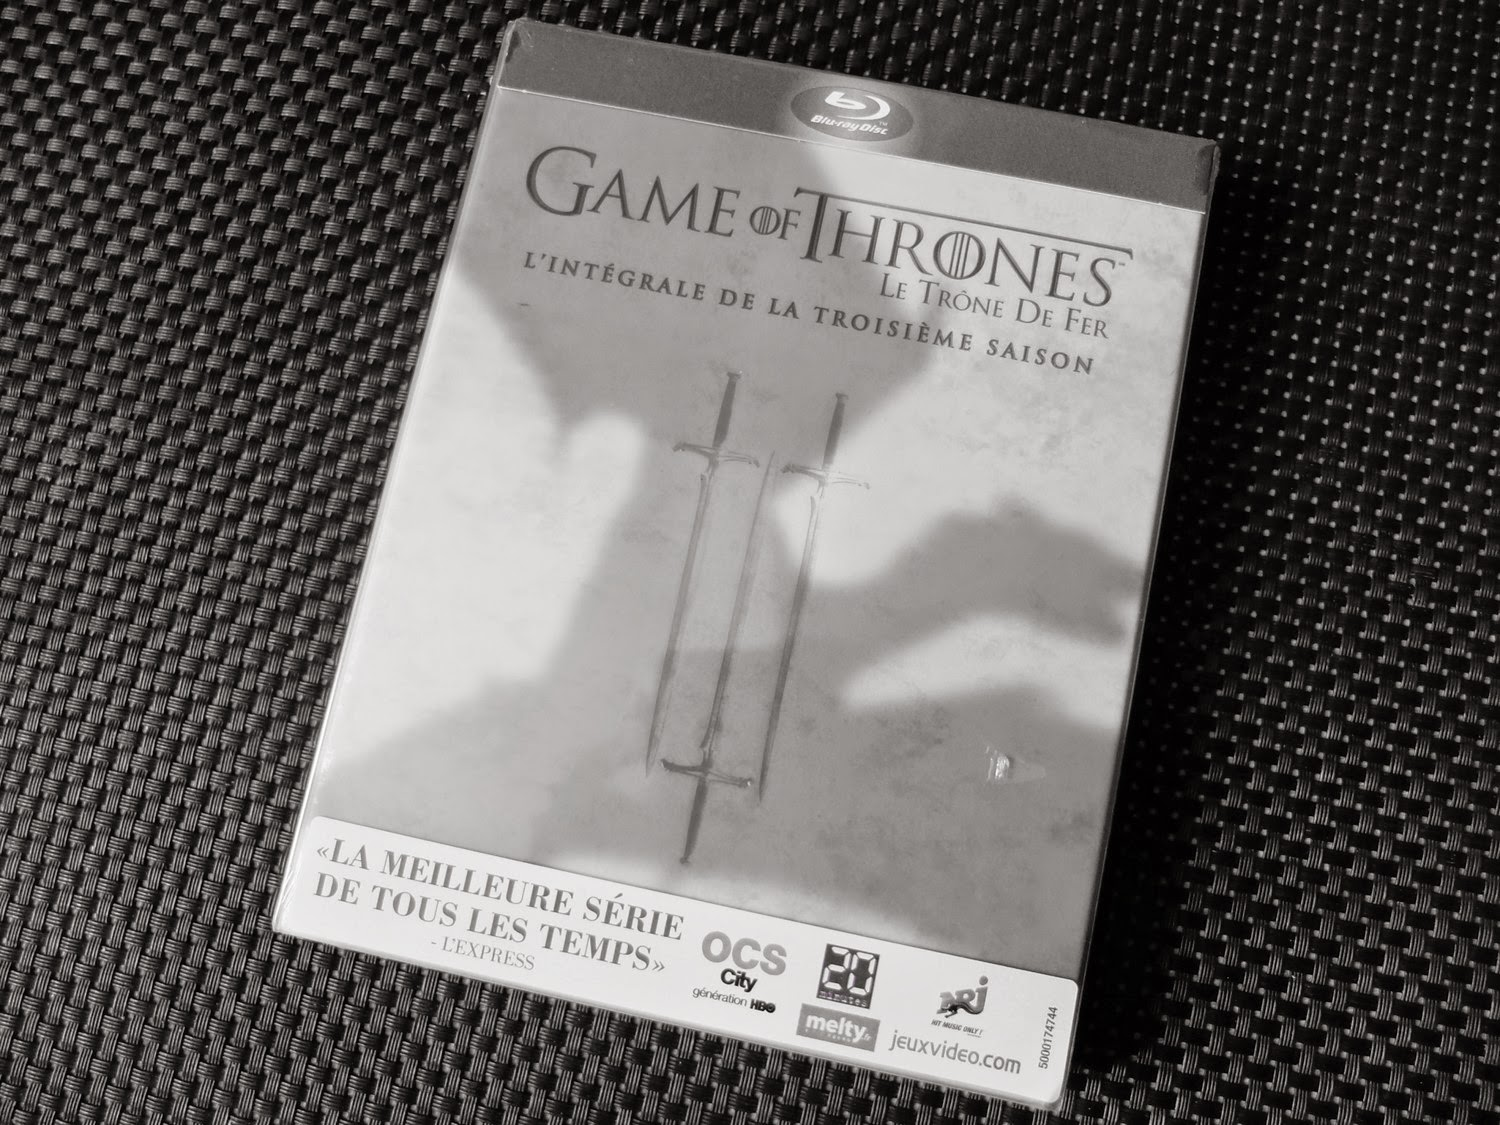 Saison 3 Games Of Thrones jeu-concours HBO  Trone de fer blu-ray